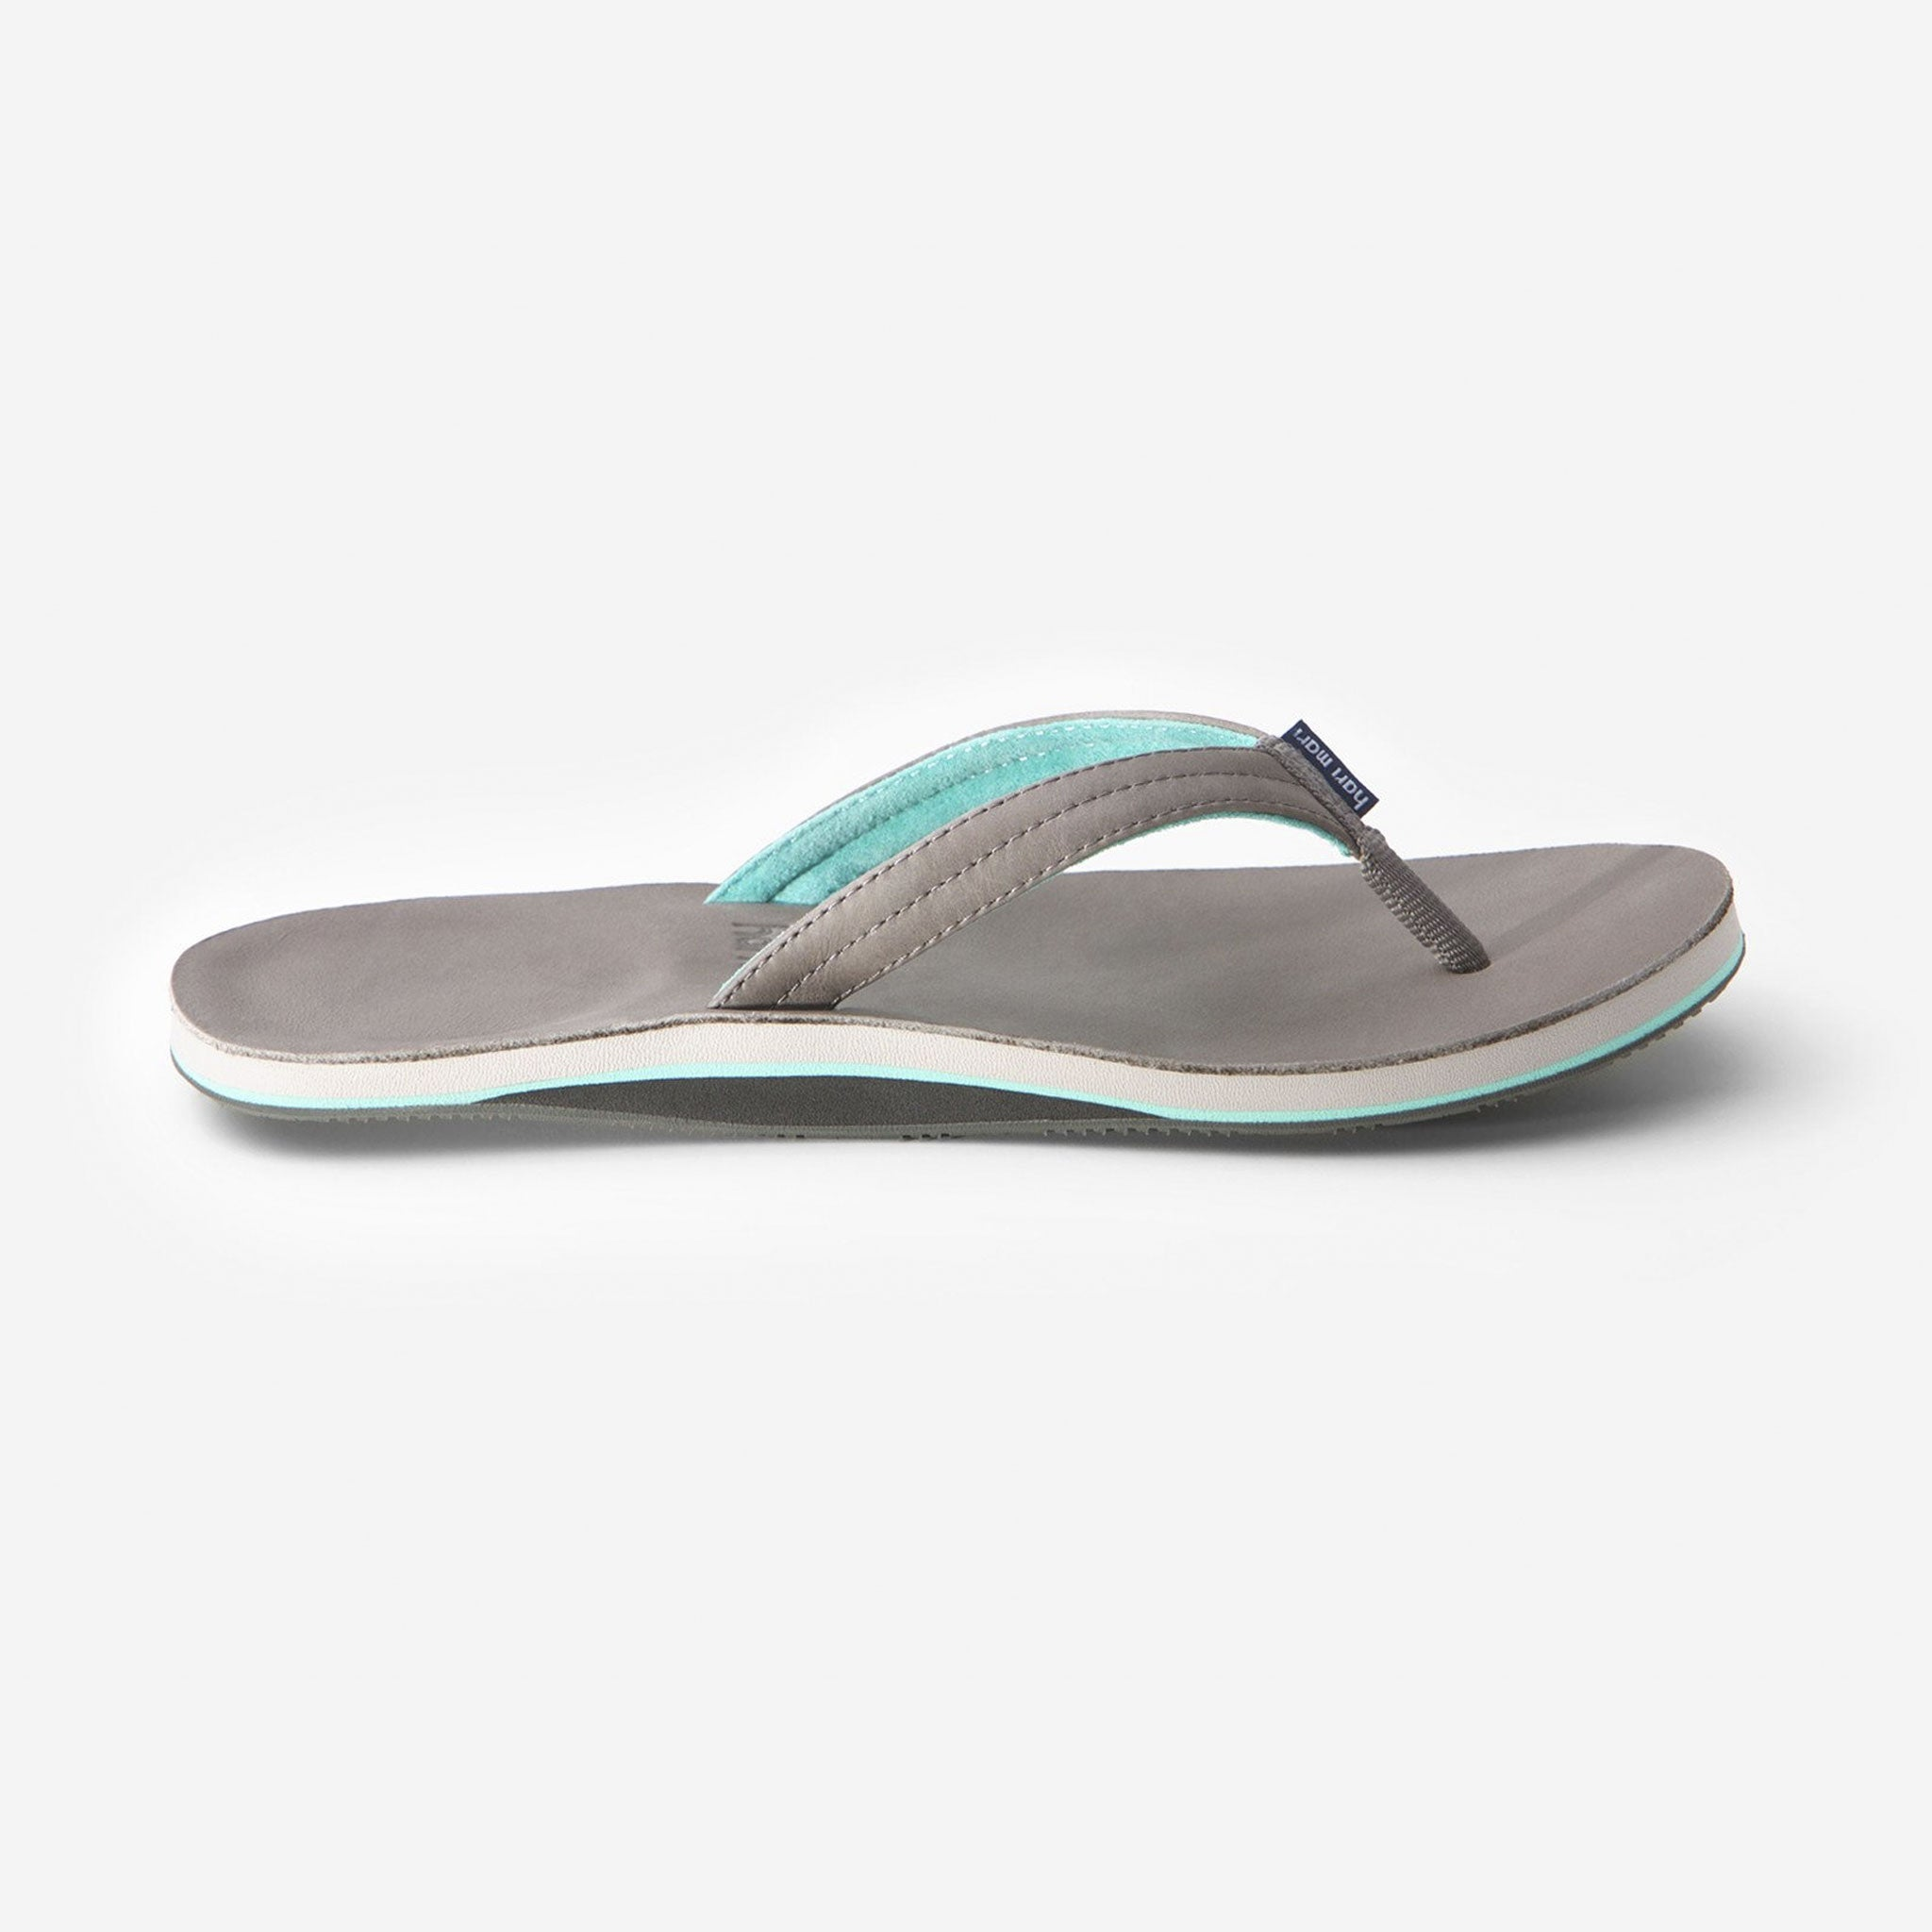 Lakes - Women's - Dark Gray/Mint - Side View